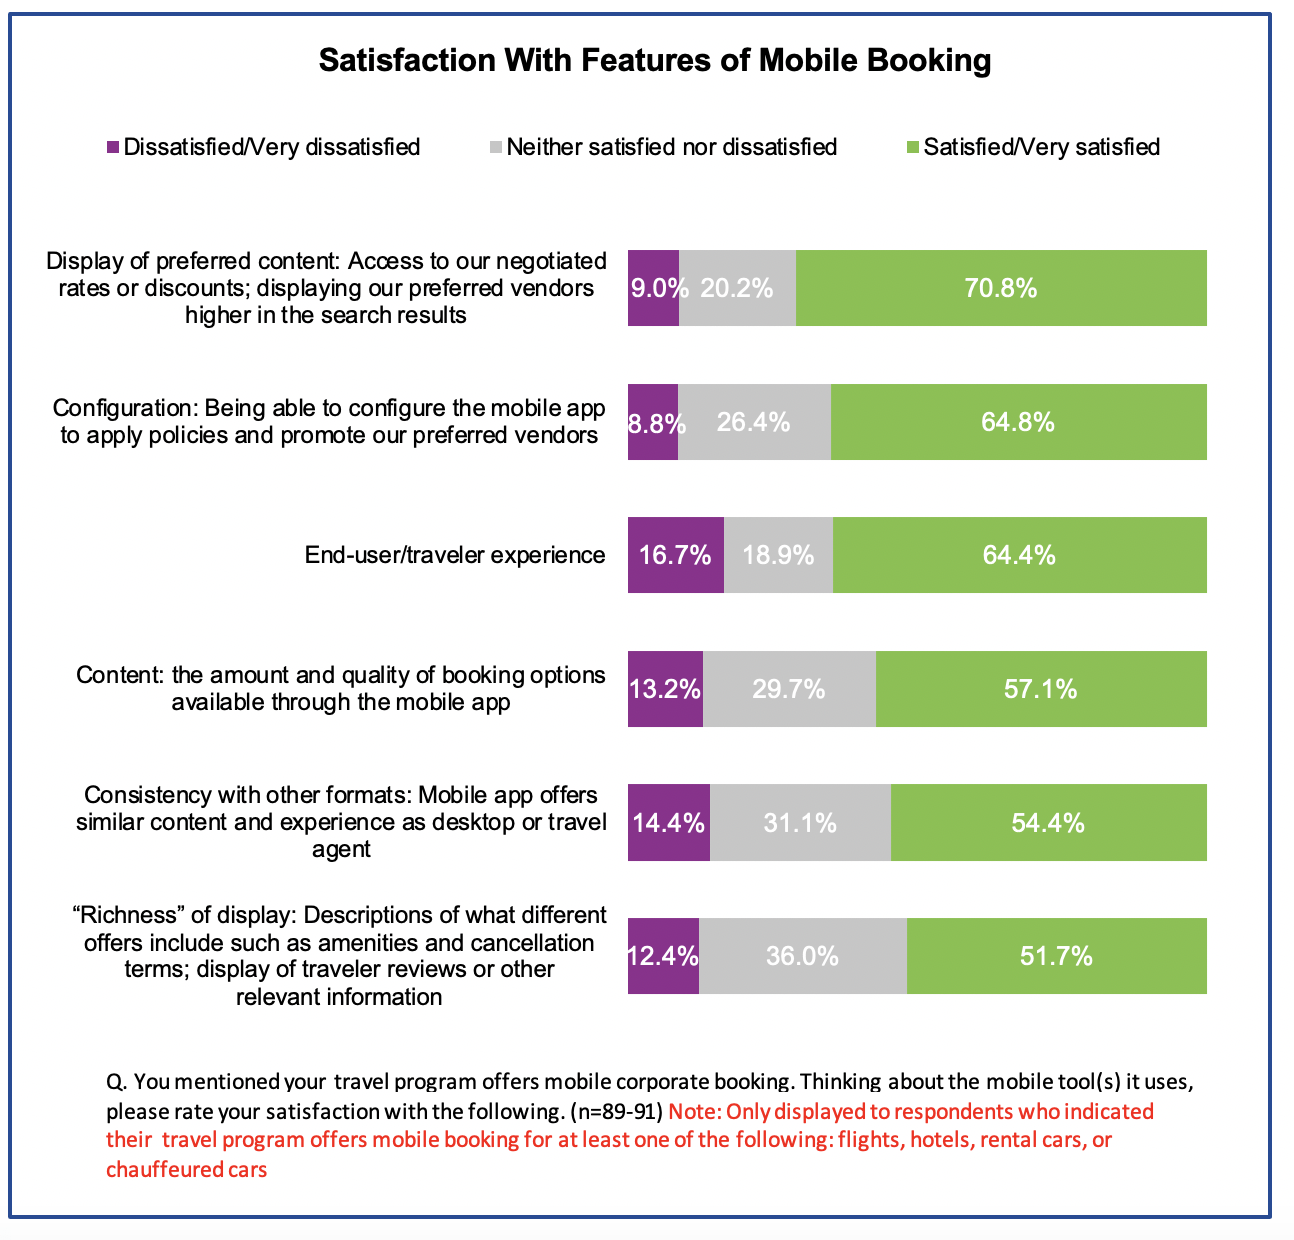 Figure 3: 16.7% of travel managers said their current mobile booking solution does not allow for booking hotels, 19.8% said it doesn't book flights, and 26.6% said it doesn't offer rental car booking. More than half said they cannot book rail (58%) or chauffeured cars (86.1%) through their mobile app.